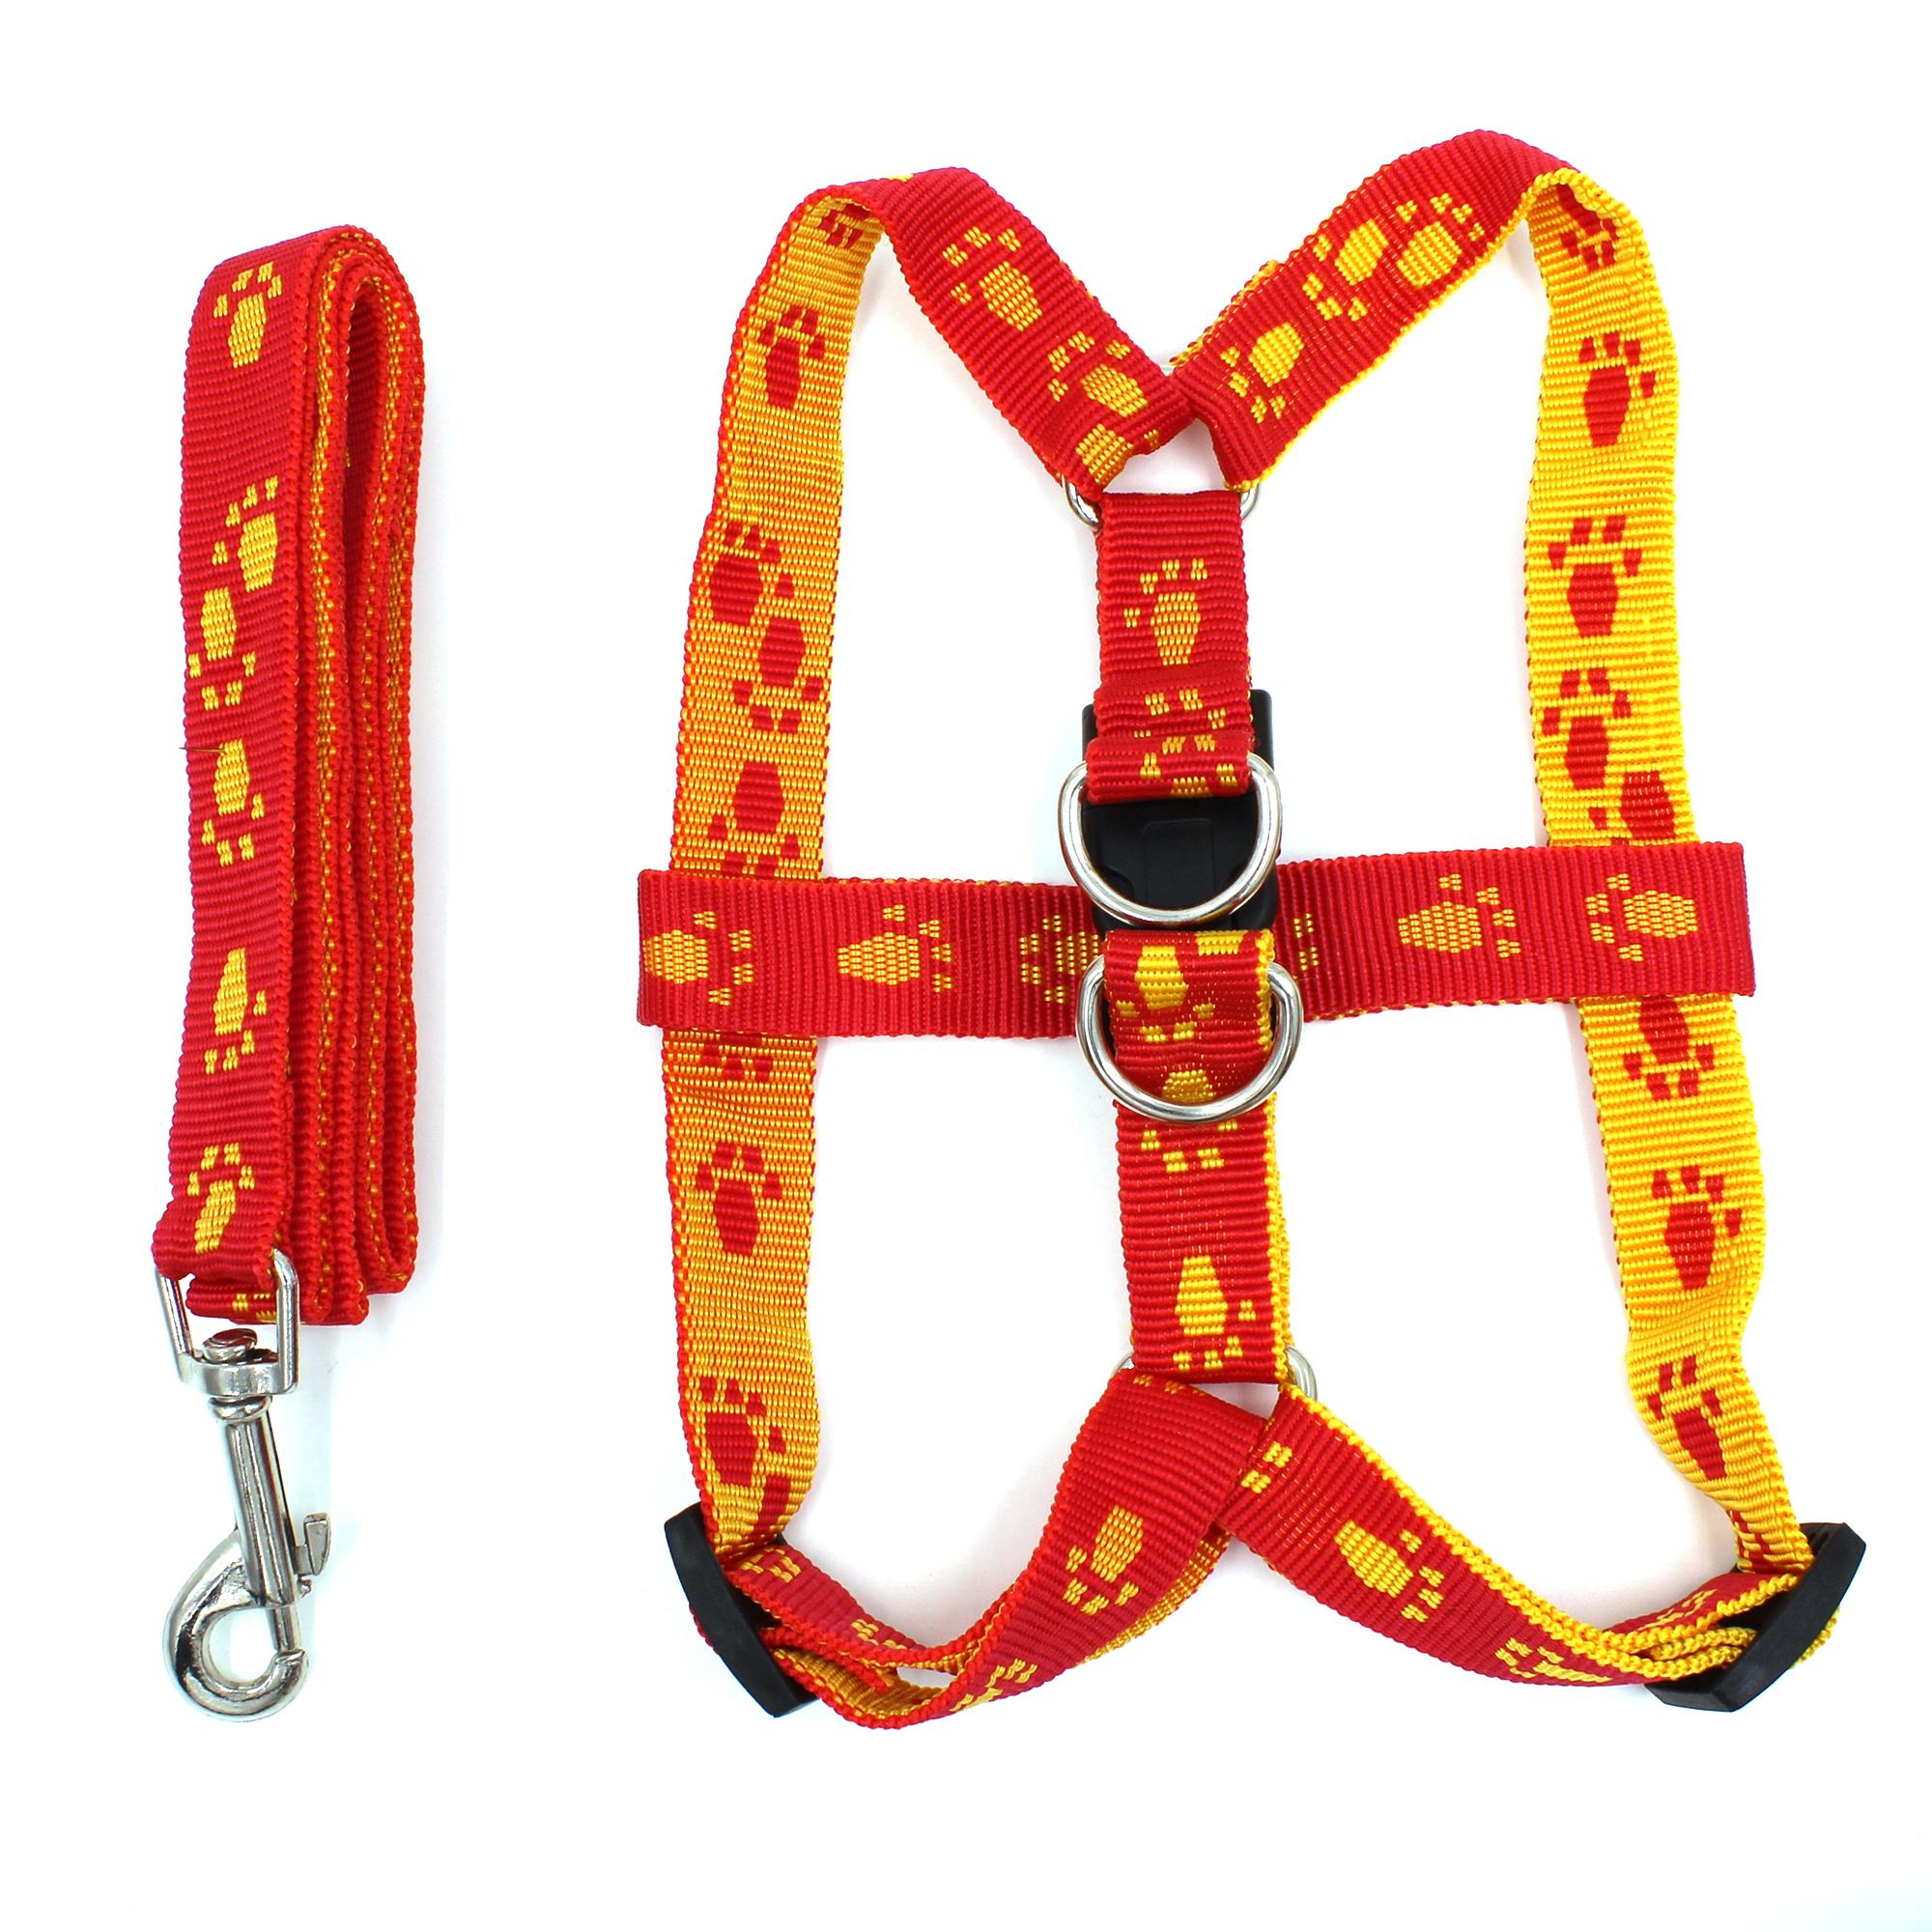 Digisoria Paws Pattern Dog Leash Harness (red/yellow) By Digisoria.